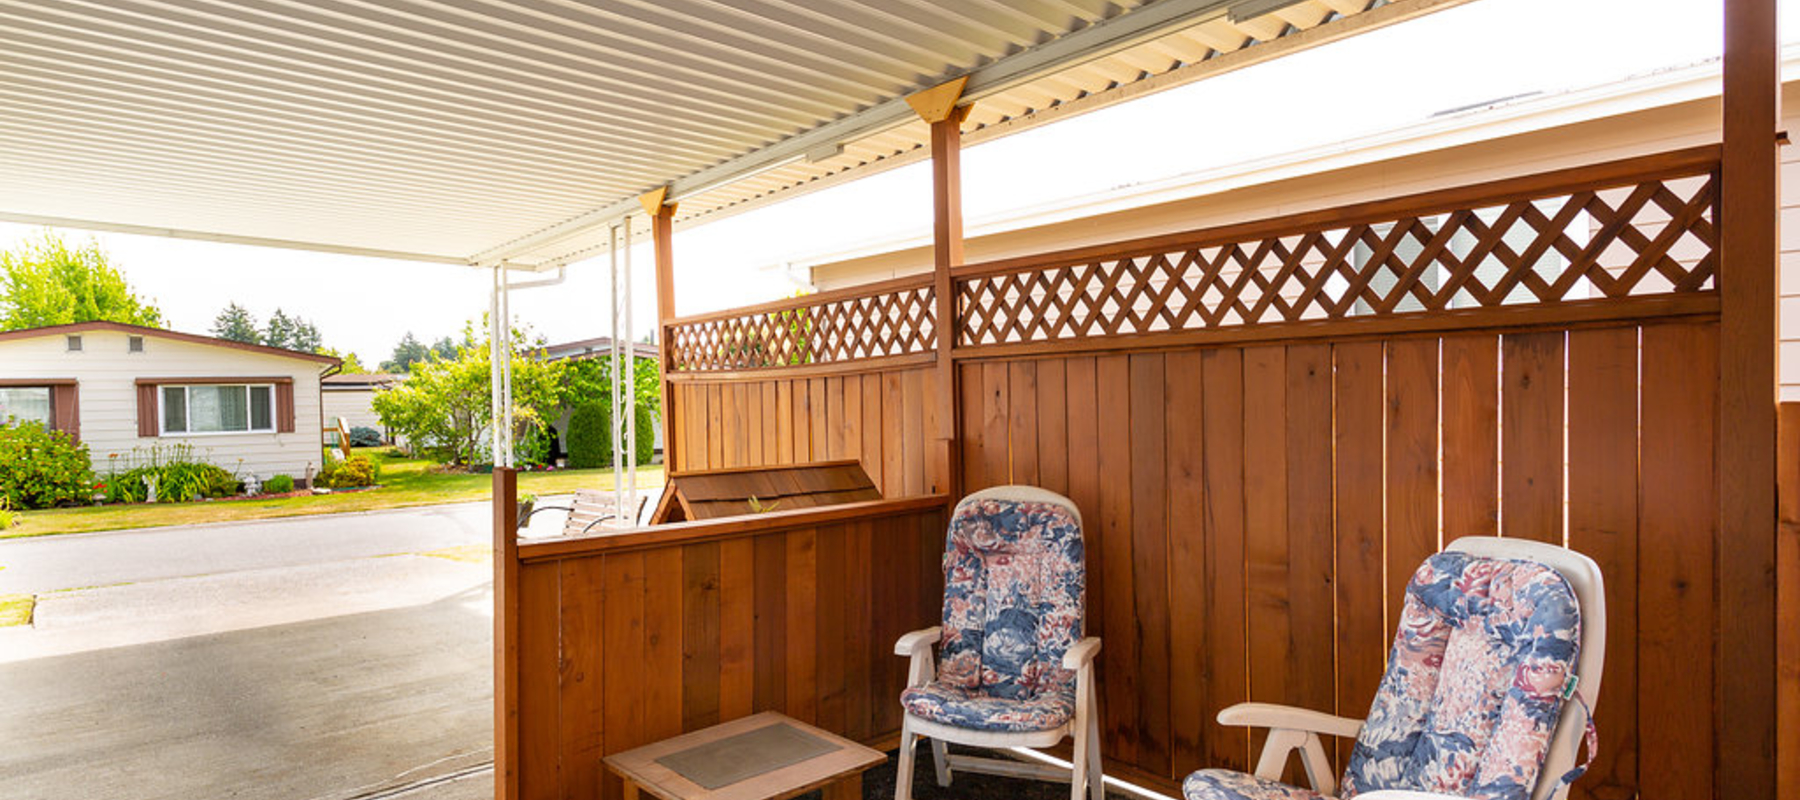 Covered Patio, Summergate Village